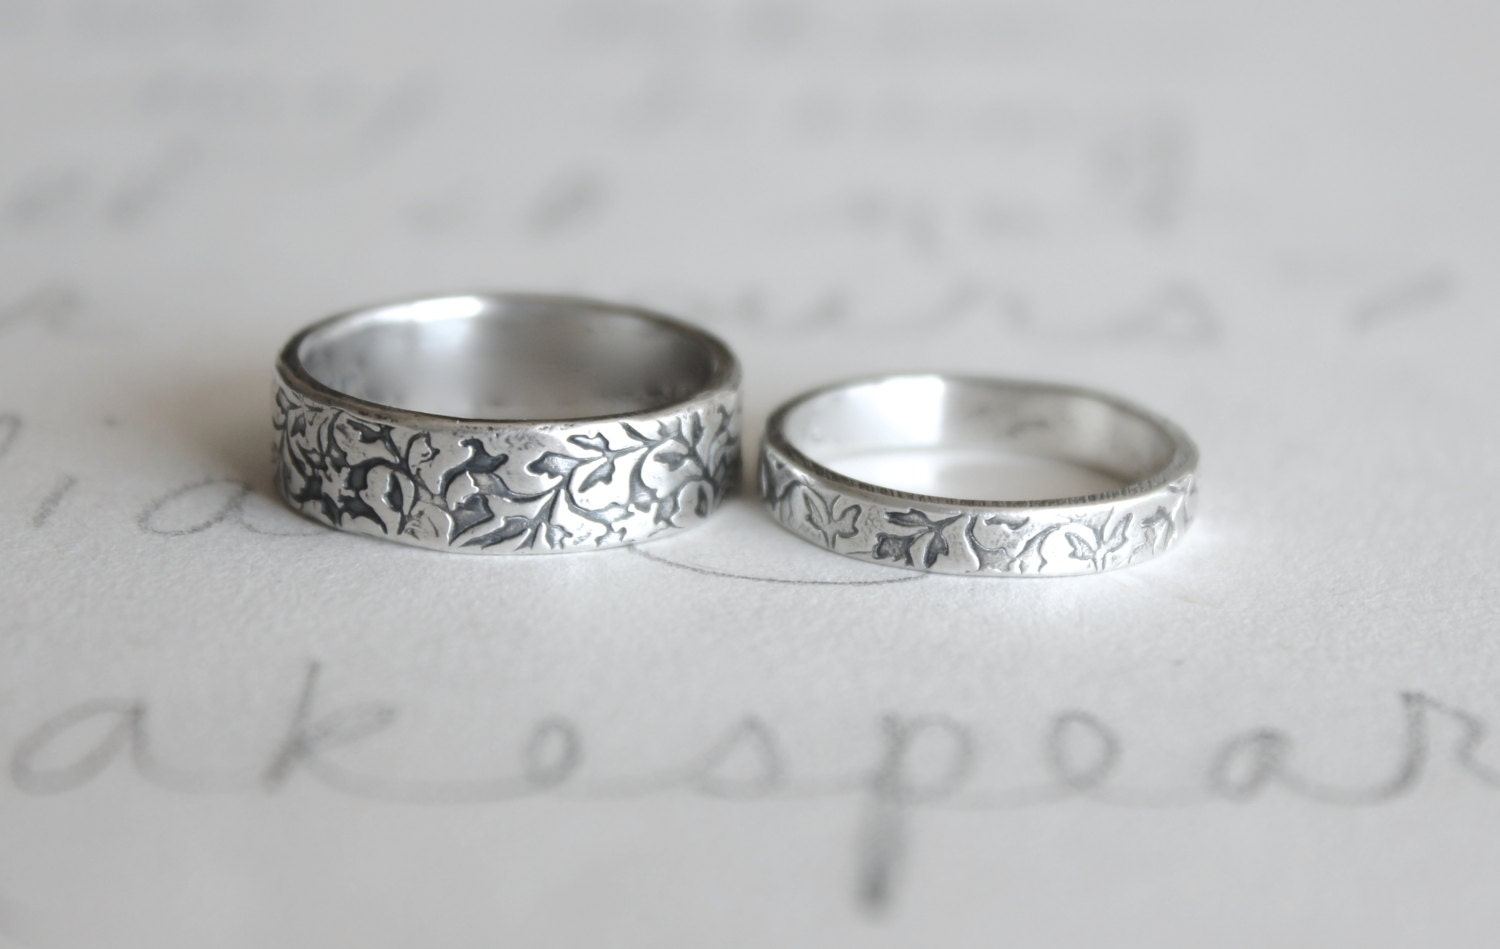 leaf vine ring wedding rings and bands wedding band ring set vine leaf wedding rings bands handmade silver wedding ring set engraved wedding rings by peacesofindigo